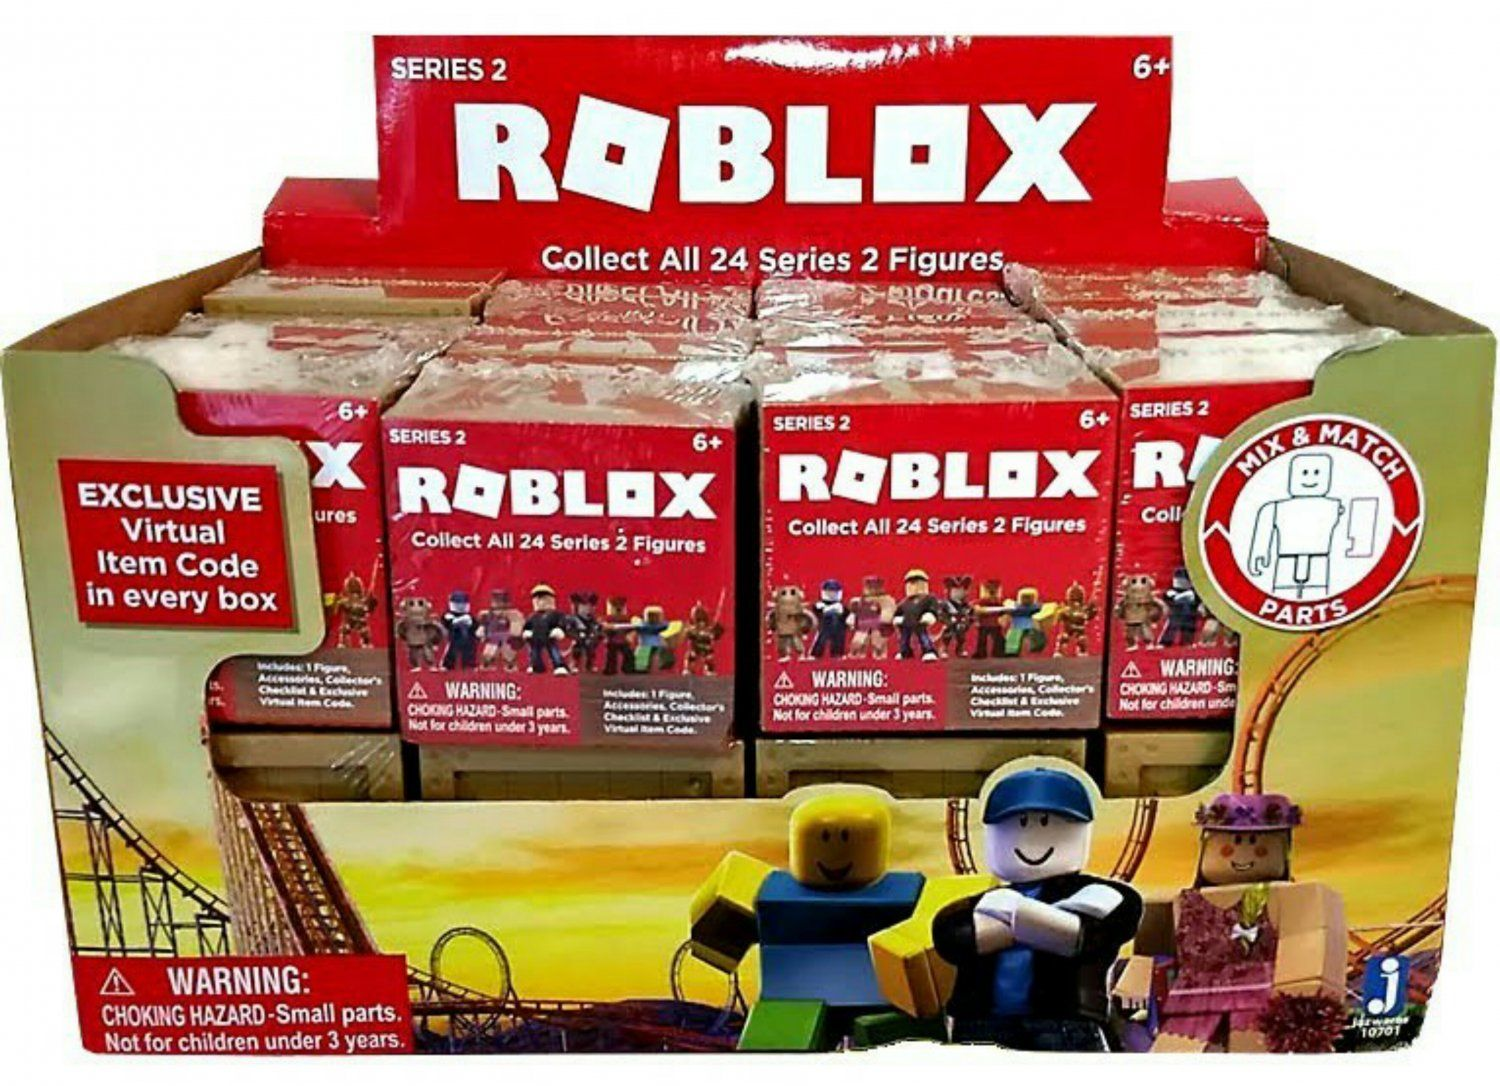 Roblox Mystery Action Figures Series 2 Blind Box Assortment Full Case Of 24 Sealed Cube Packs By Jazwares 10701 Onlin Roblox Action Figures Best Kids Toys